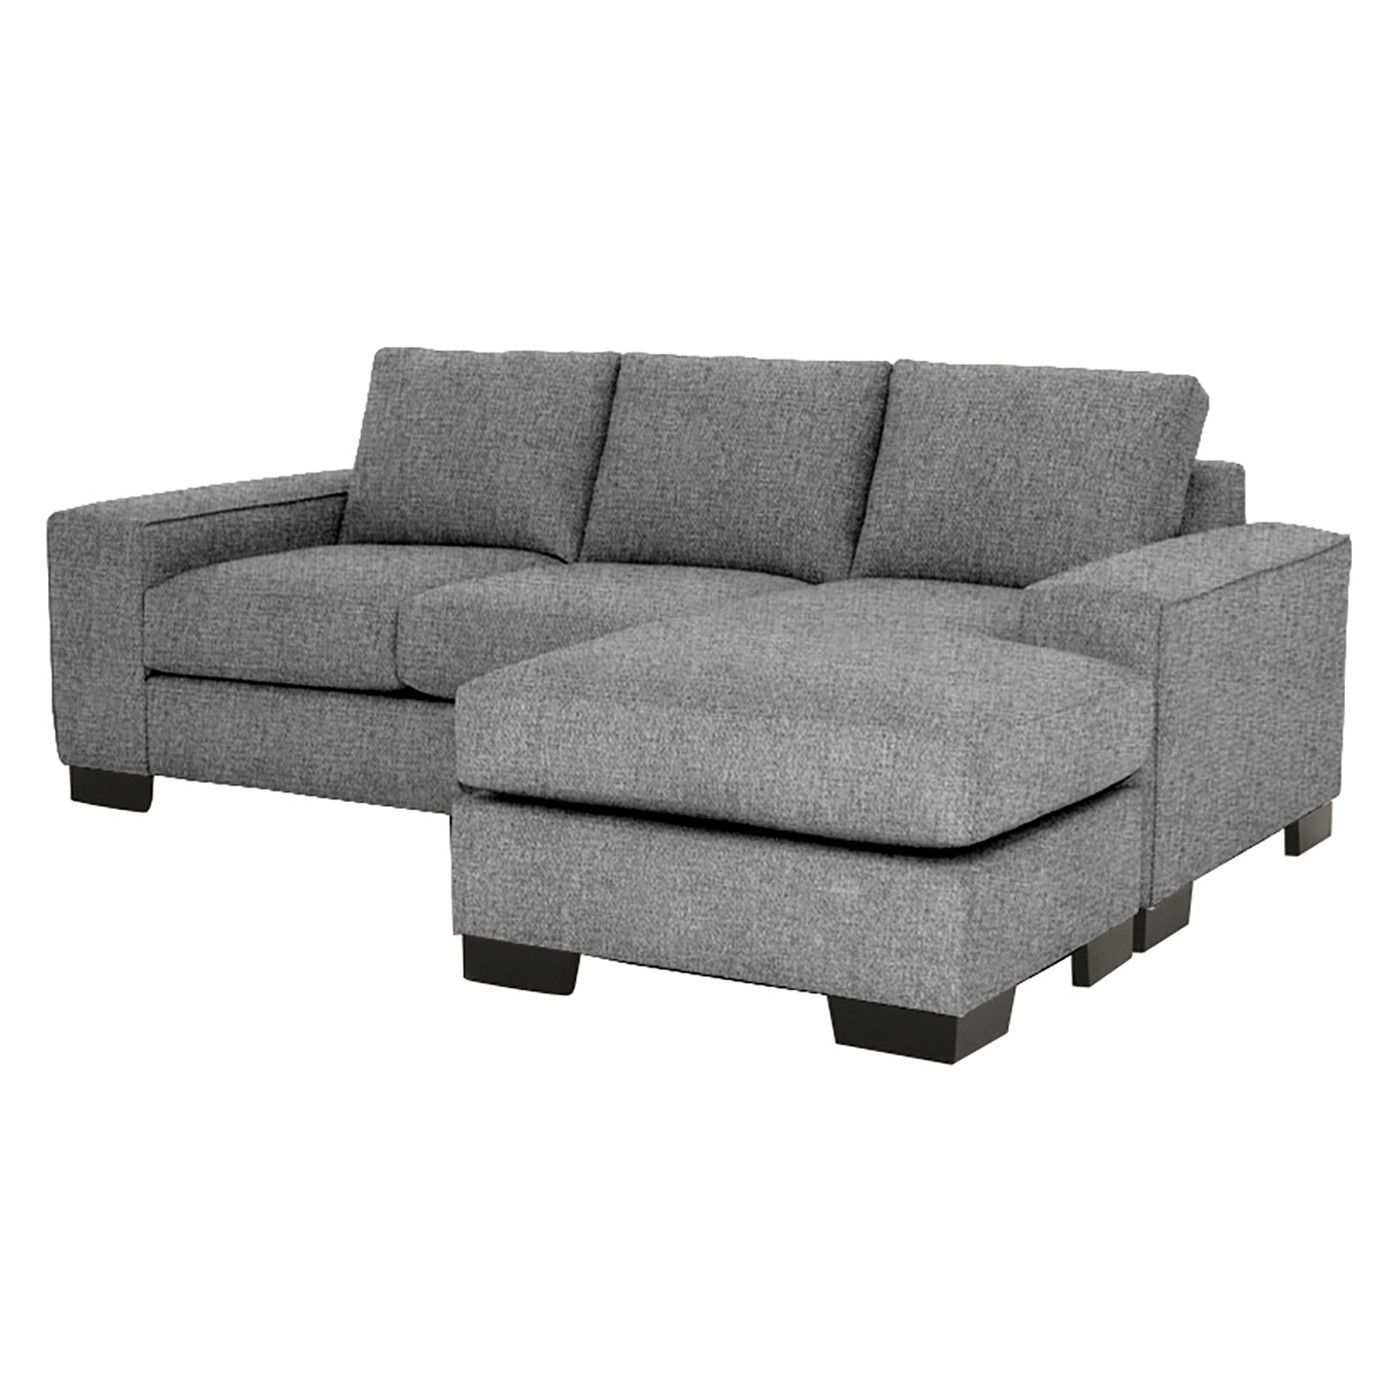 This Collection Has The Hottest Look Around Right Now With Stylish Wide Track Arms And A Low Rise Design The Melrose Collection Will Most Def Home Chais